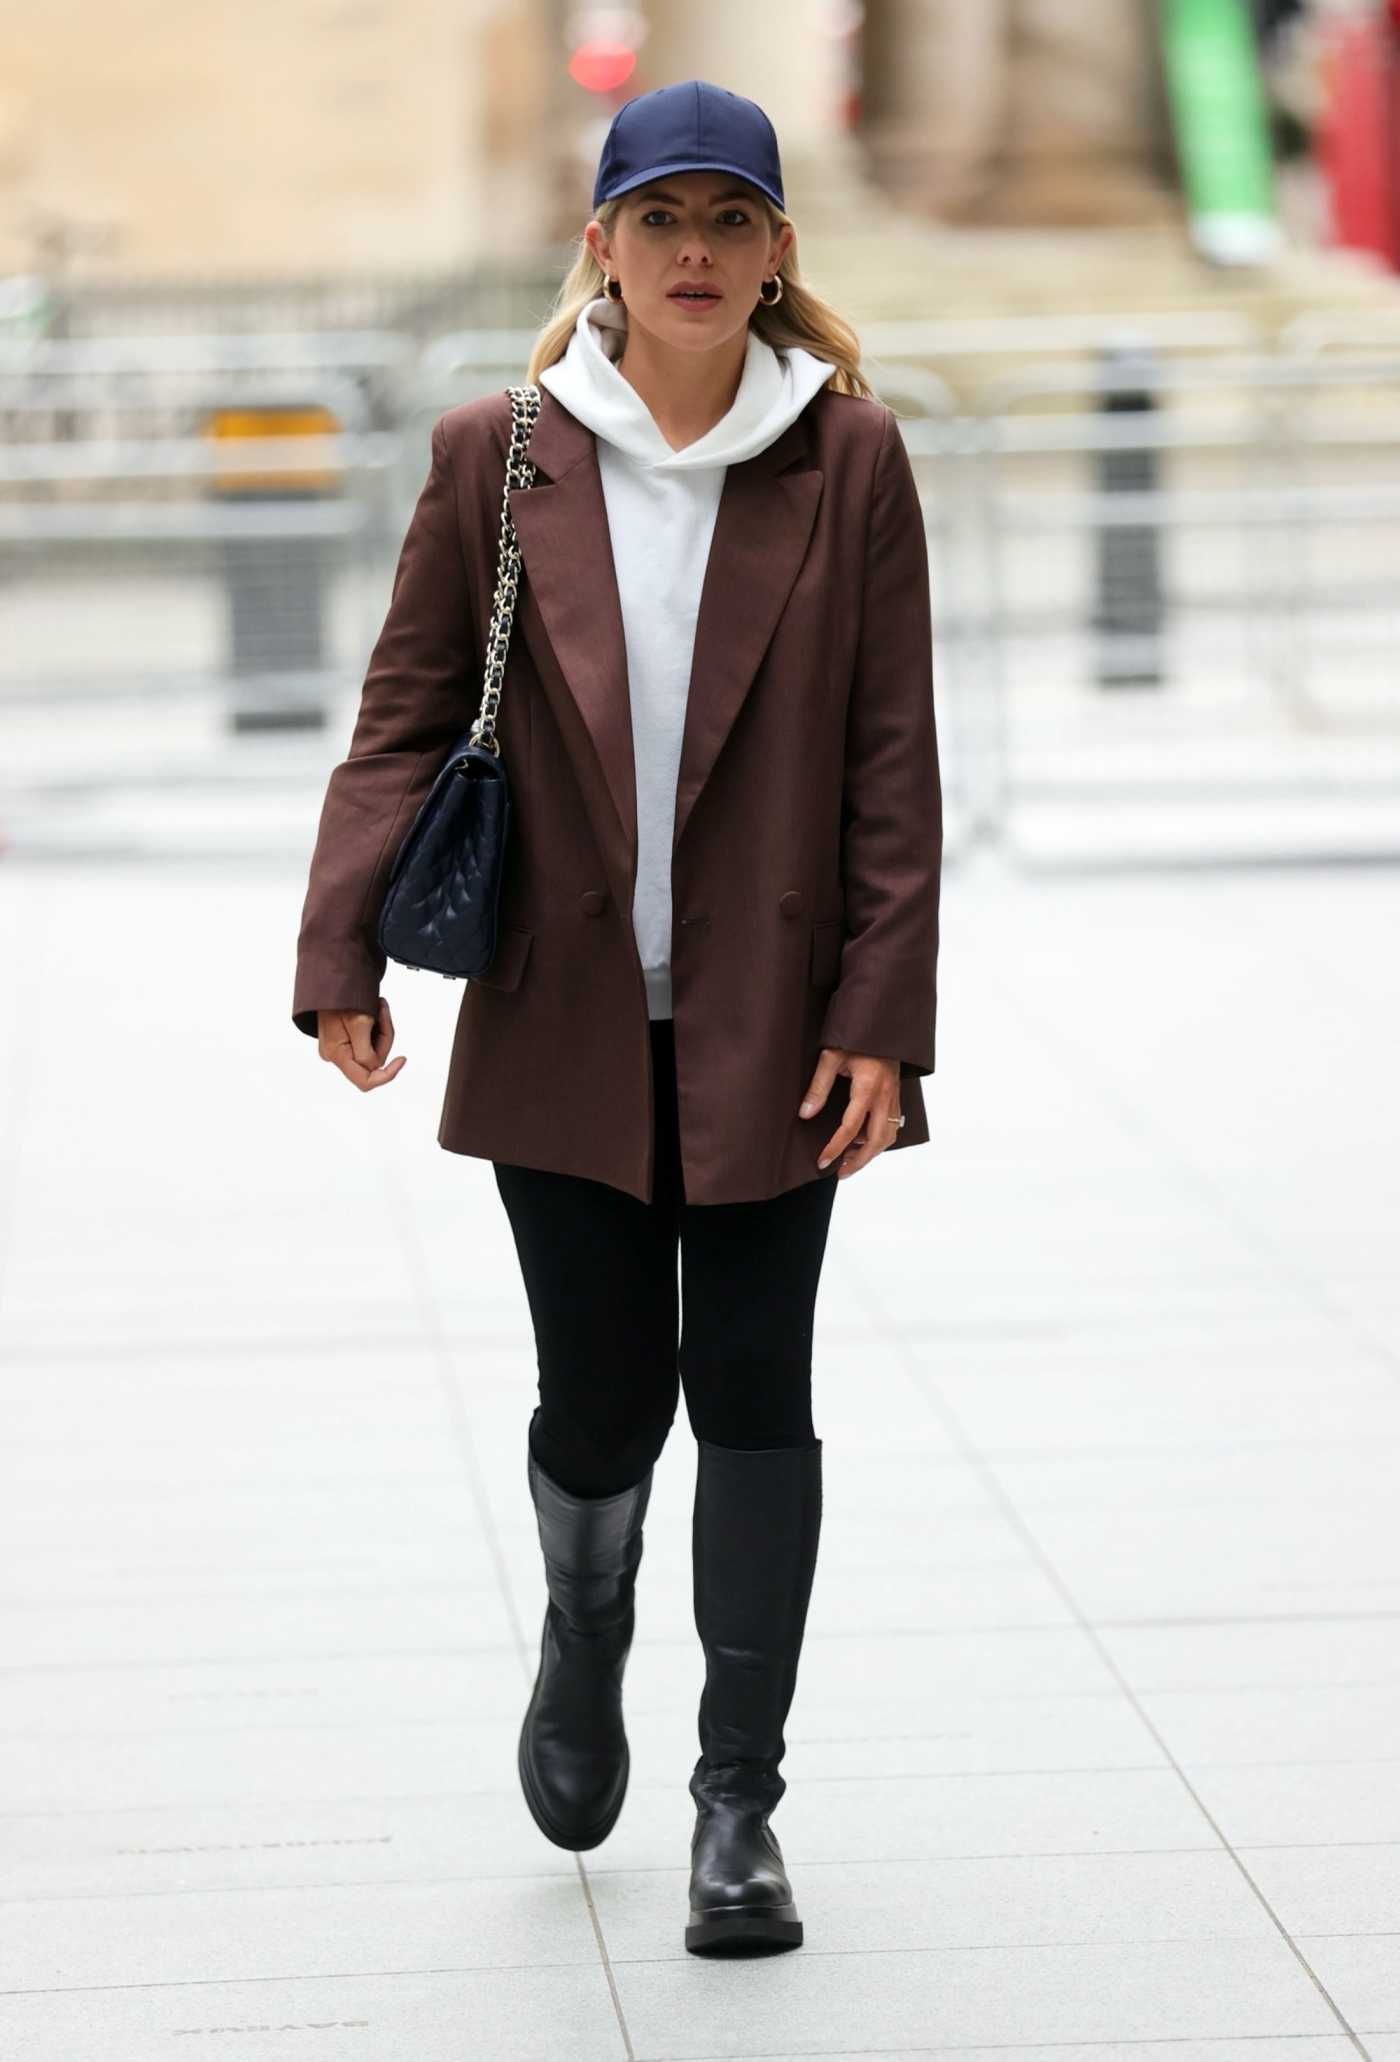 Mollie King in a Brown Blazer Arrives at the BBC Studios in London 02/19/2021